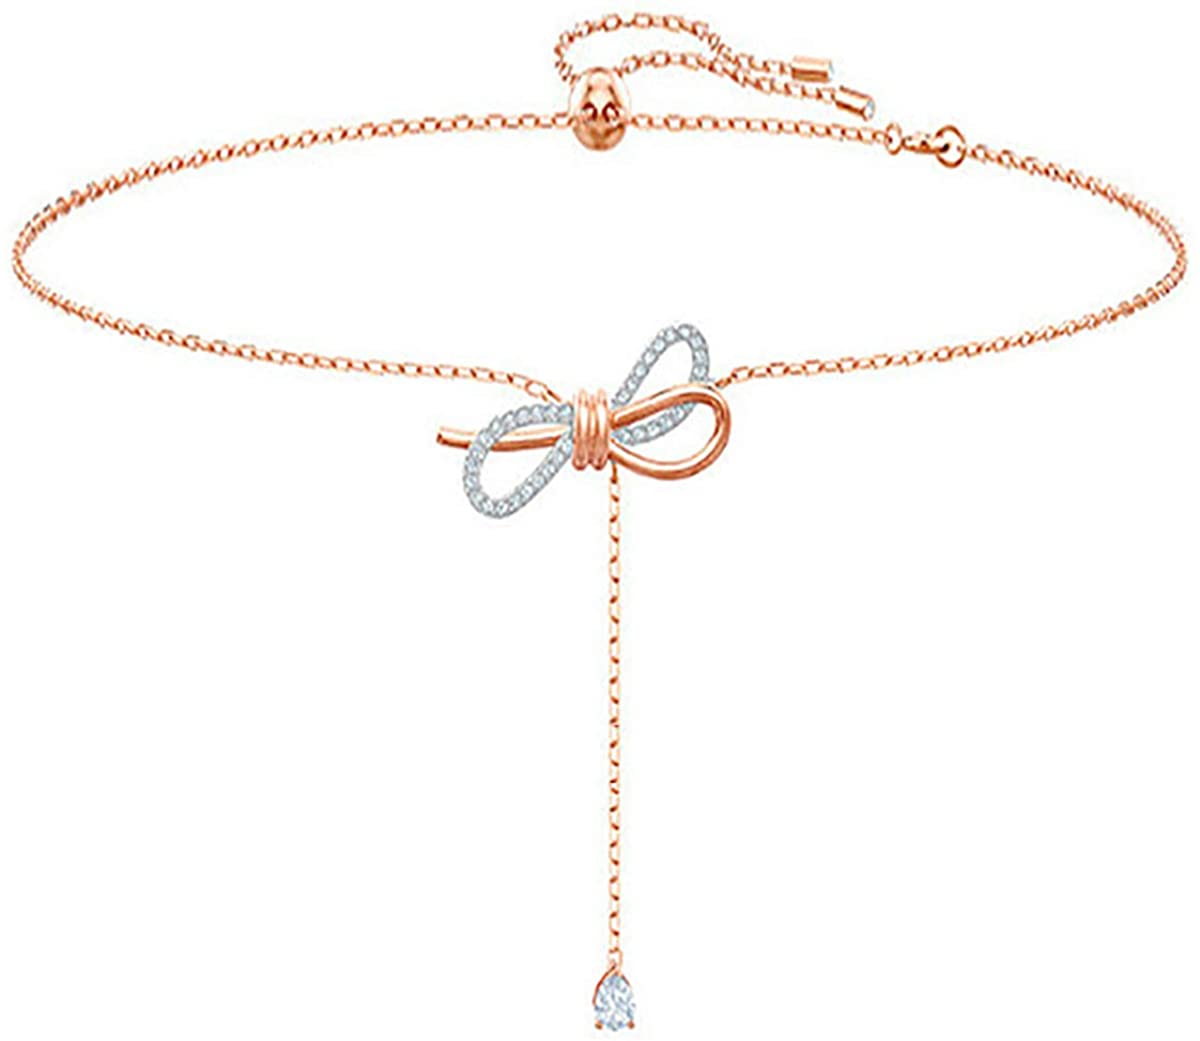 Choker Lariat Y Pendant Necklace Rose Gold Plated 40CM(15.75 Inches) Chain